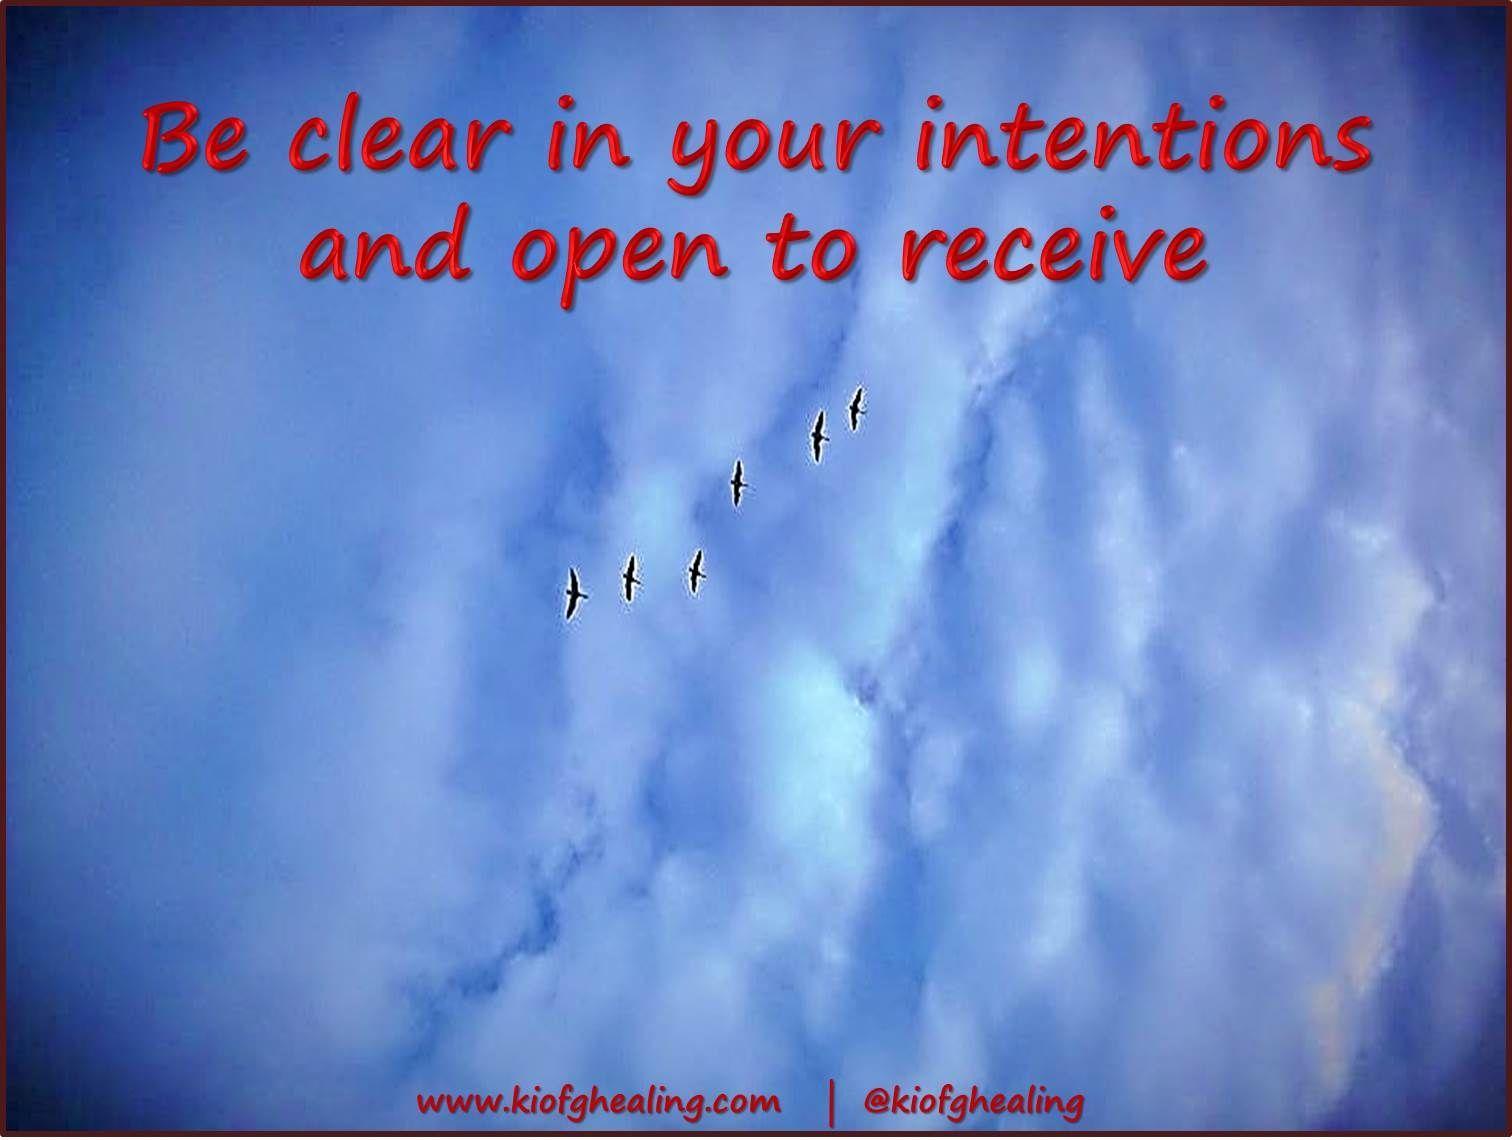 Be clear in your intentions and open to receive